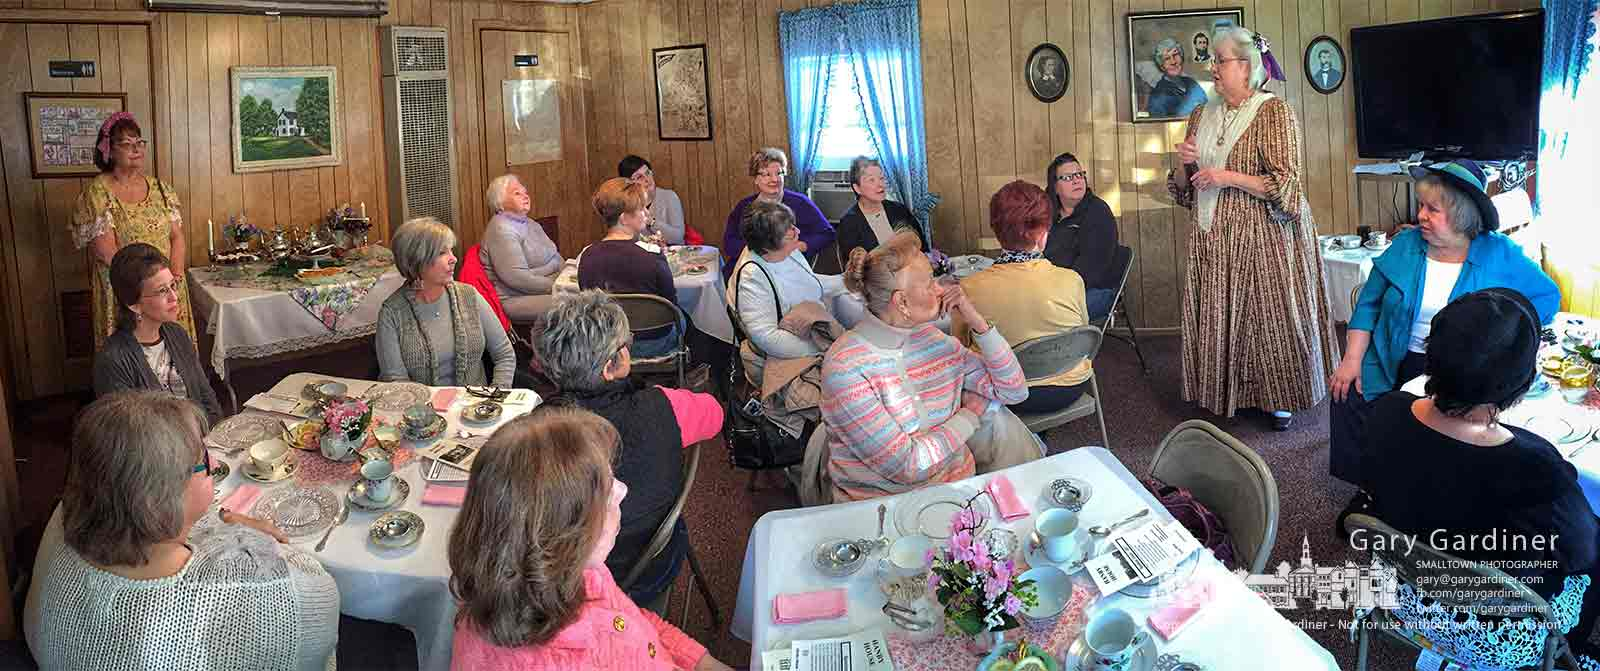 Major Pauline Cushman, portrayed by Valerie Hamill, shares stories of her daring deeds as a Yankee spy behind Confederate lines at the Hanby House Taking Tea gathering Saturday. My Final Photo for April 8, 2017